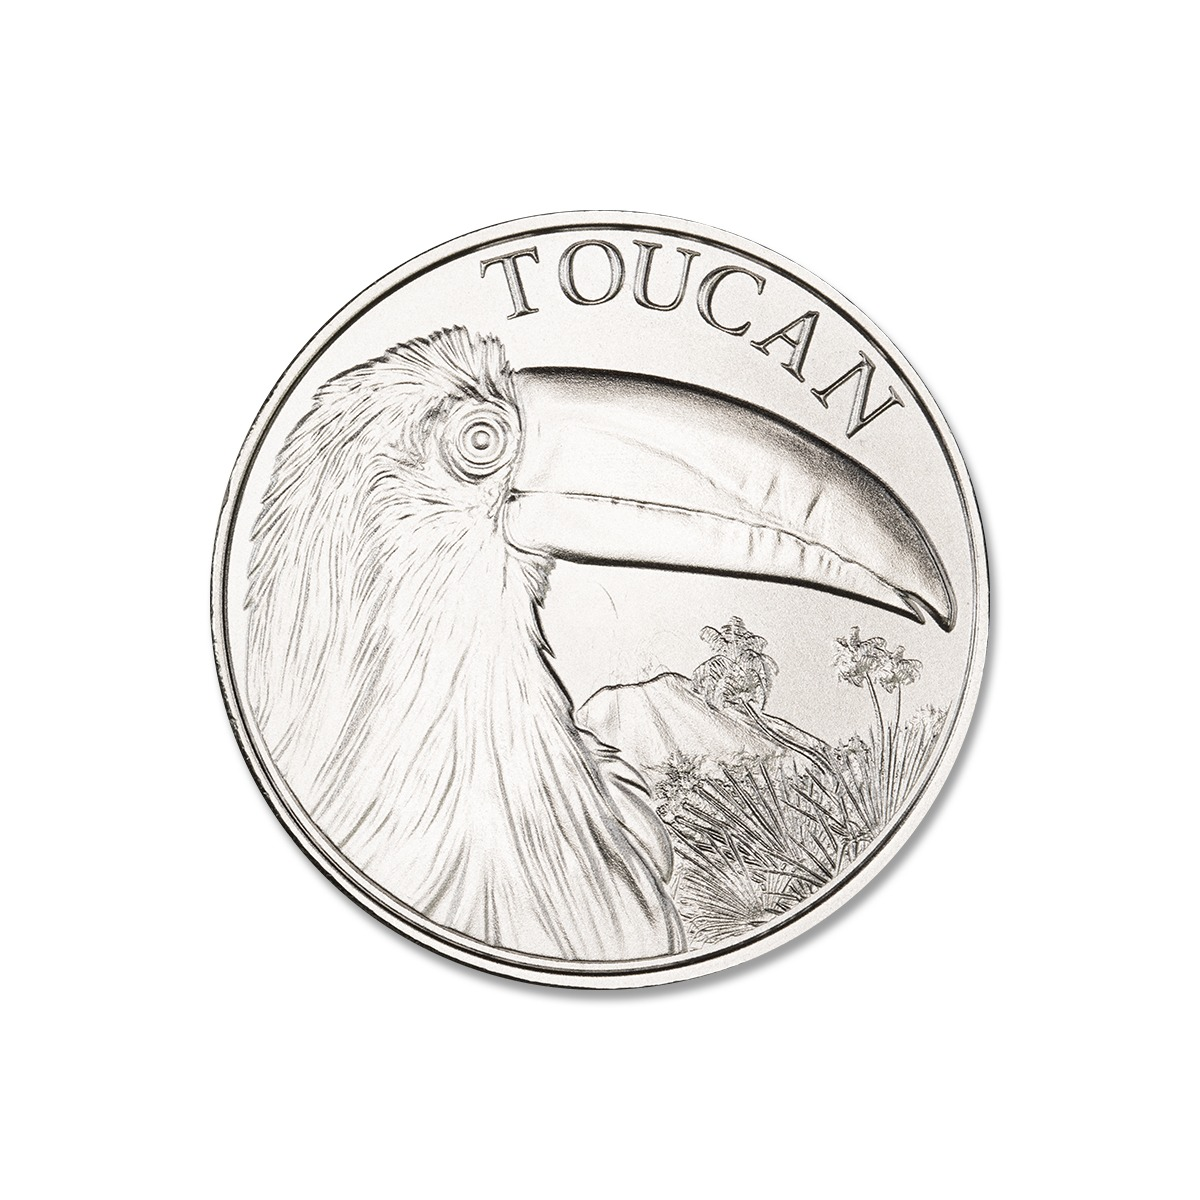 2021 TOUCAN – 1 TROY OUNCE – 39MM